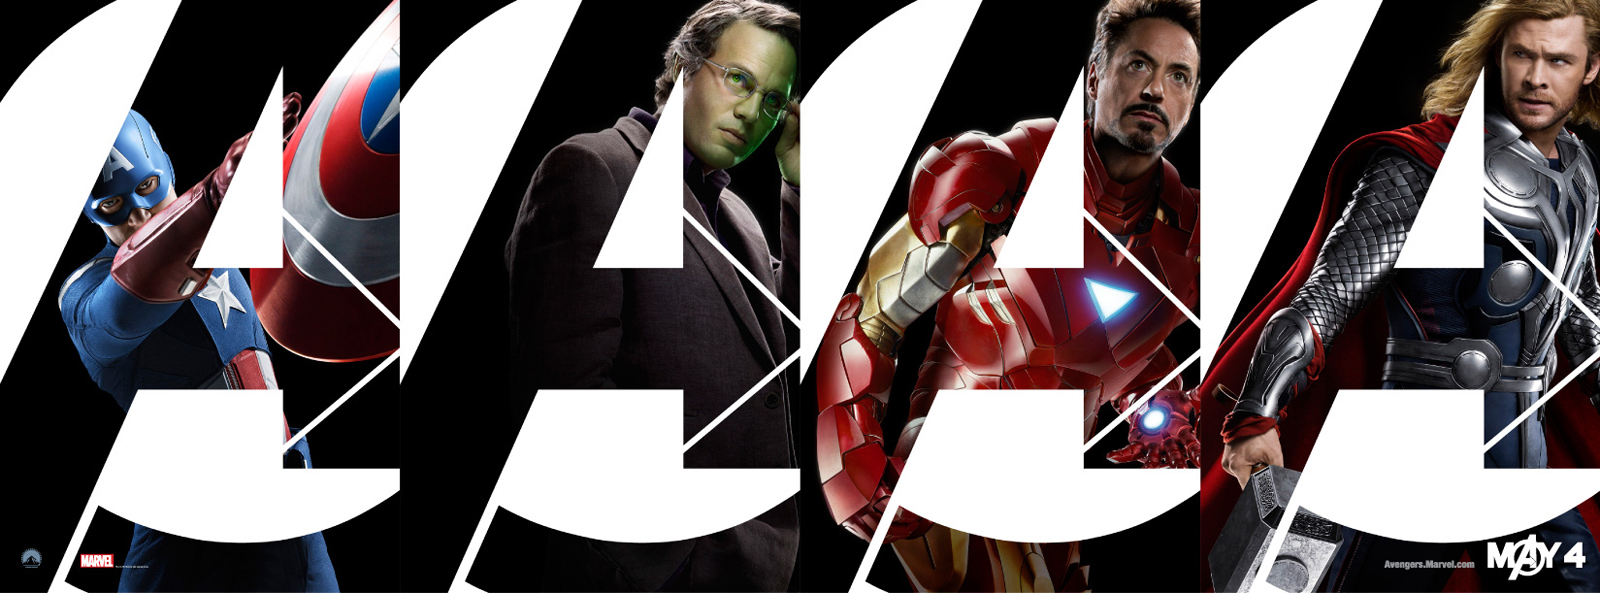 1-Avengers-Banner-New